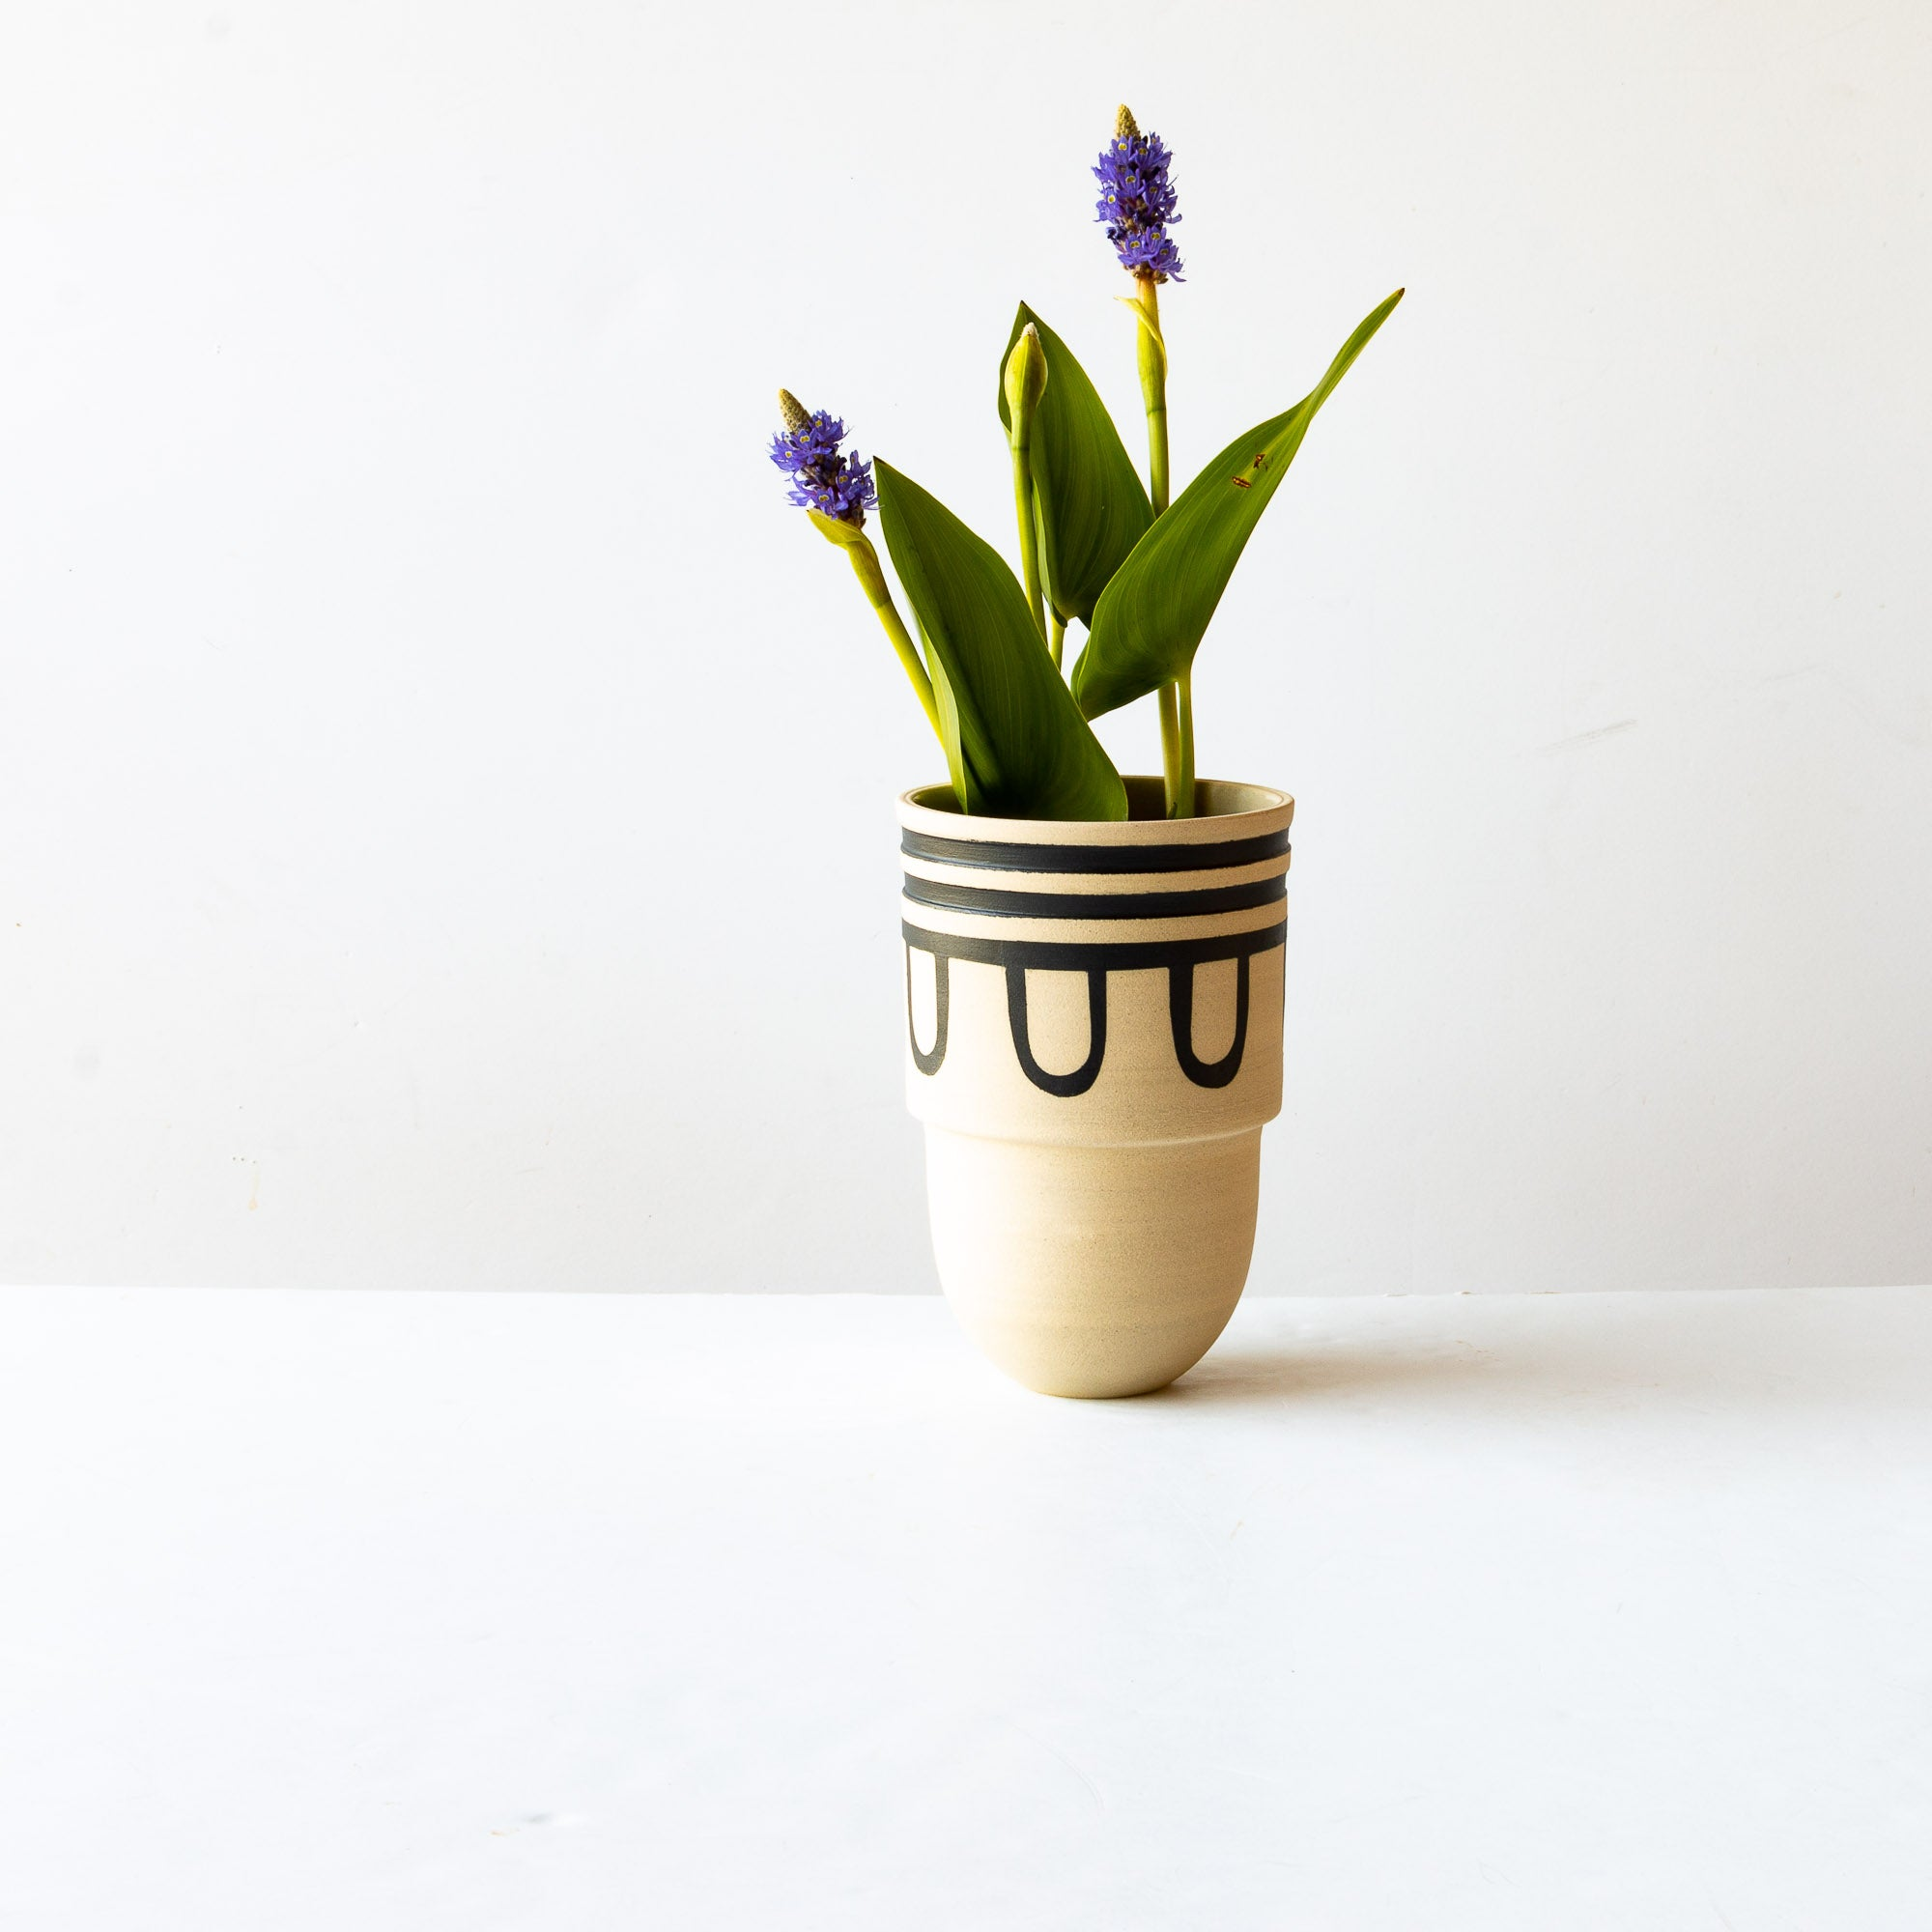 Flower in a Handmade & Hand Painted Decorative Stoneware Vessel - Sold by Chic & Basta